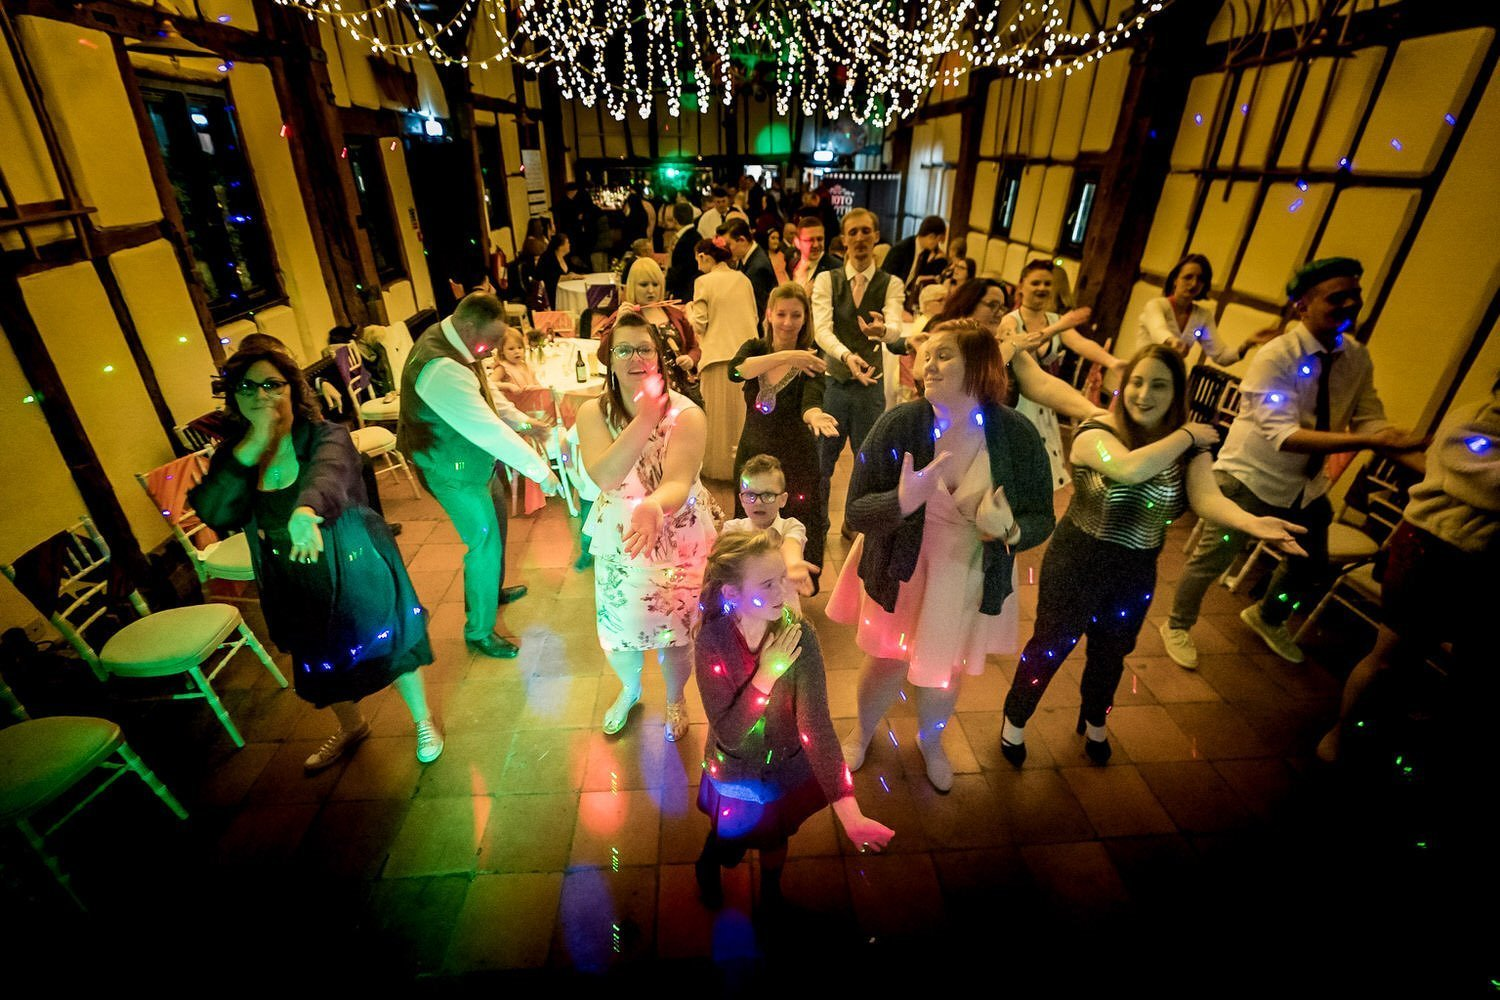 The Barns Hotel Bedford Wooten Weddings Photography Family and friends on the dancefloor doing the macarena